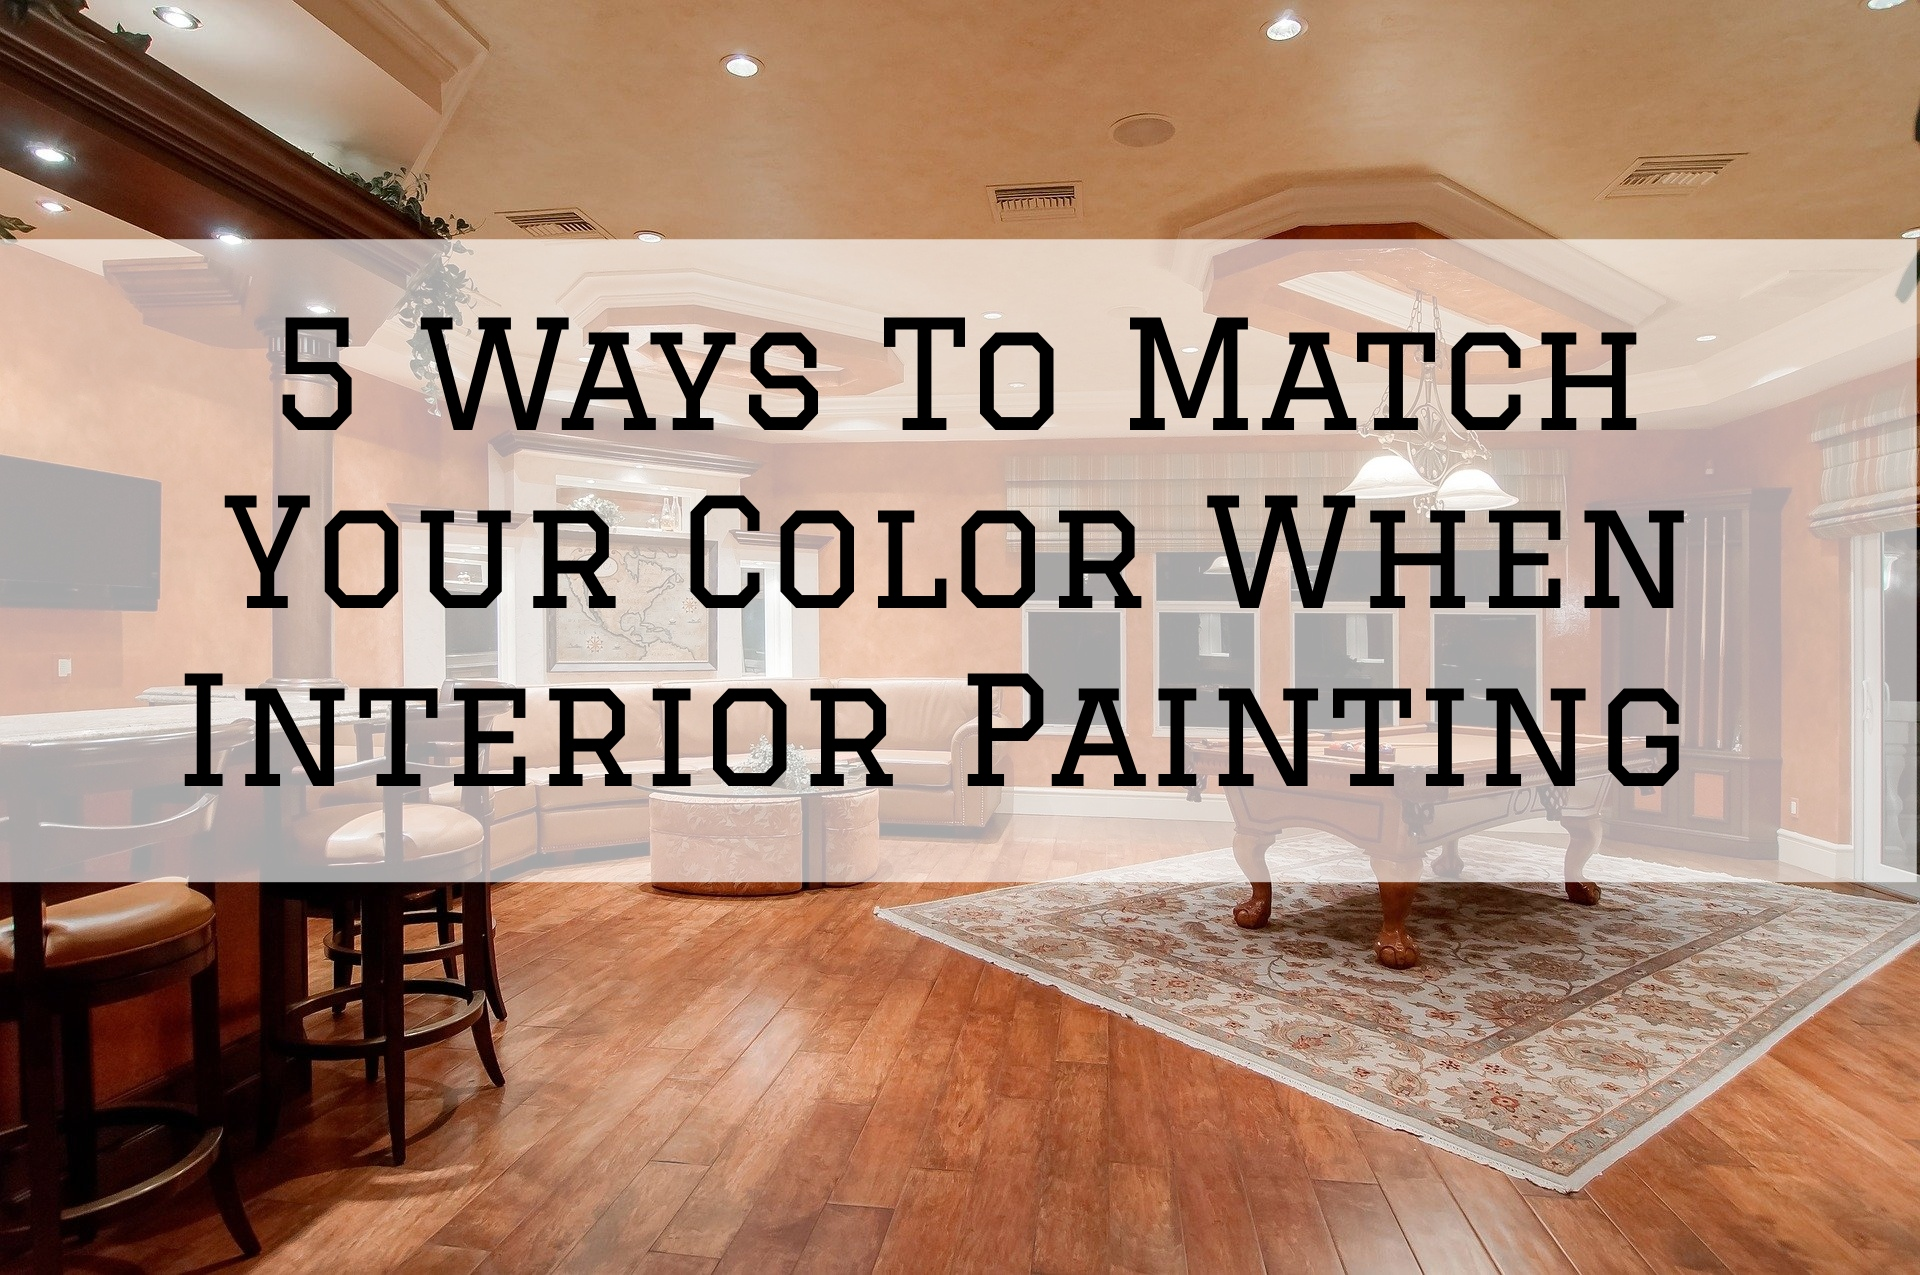 5 Ways To Match Your Color When Interior Painting in Omaha, NE